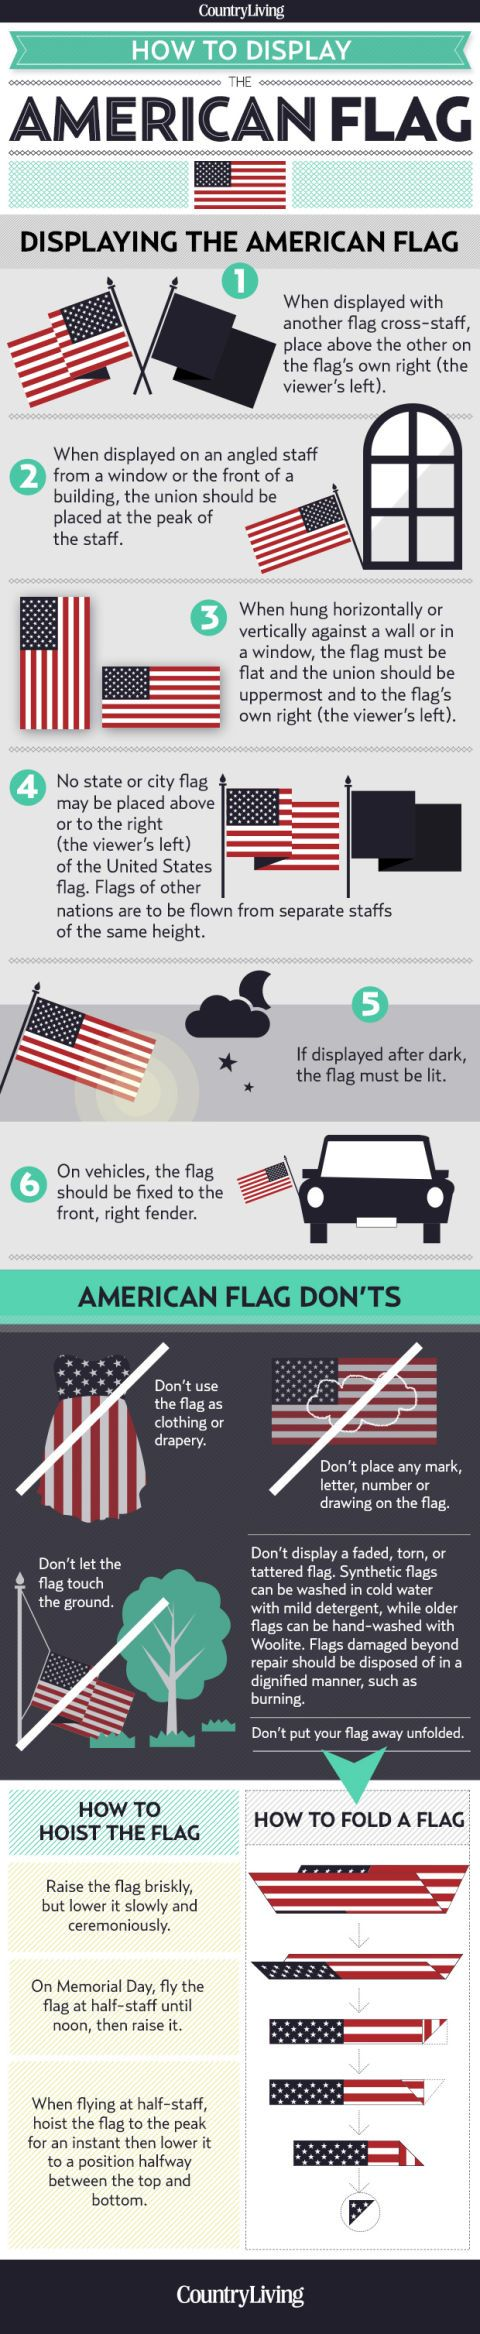 dos & don'ts of how to properly display the American Flag